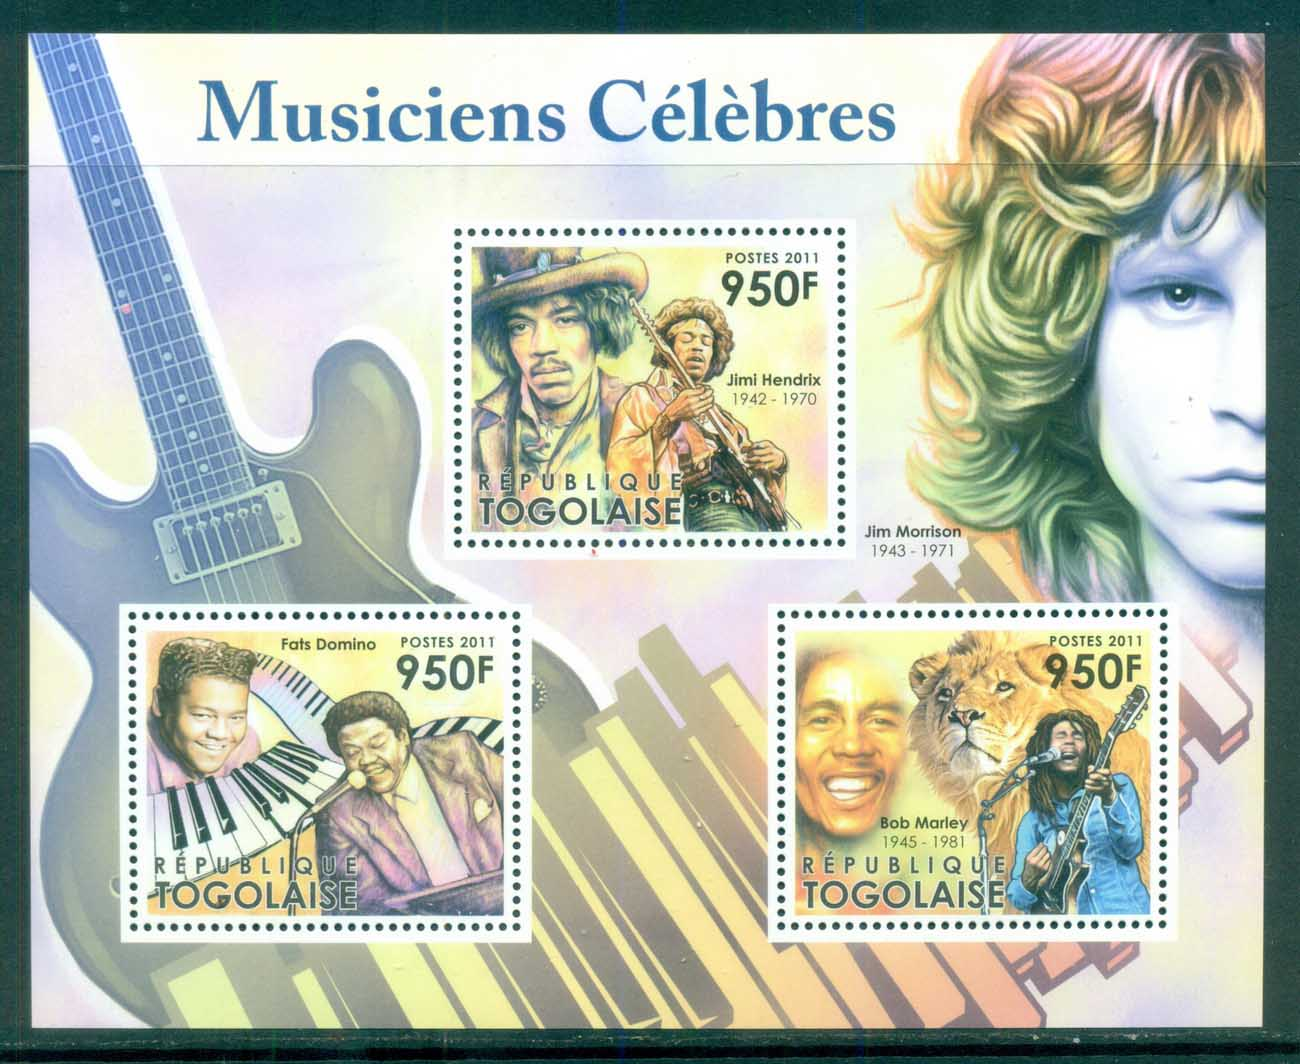 Togo 2011 Famous People, Music, Male, Jimi Hendrix, Fats Domino, Bob Marley MS MUH TG026